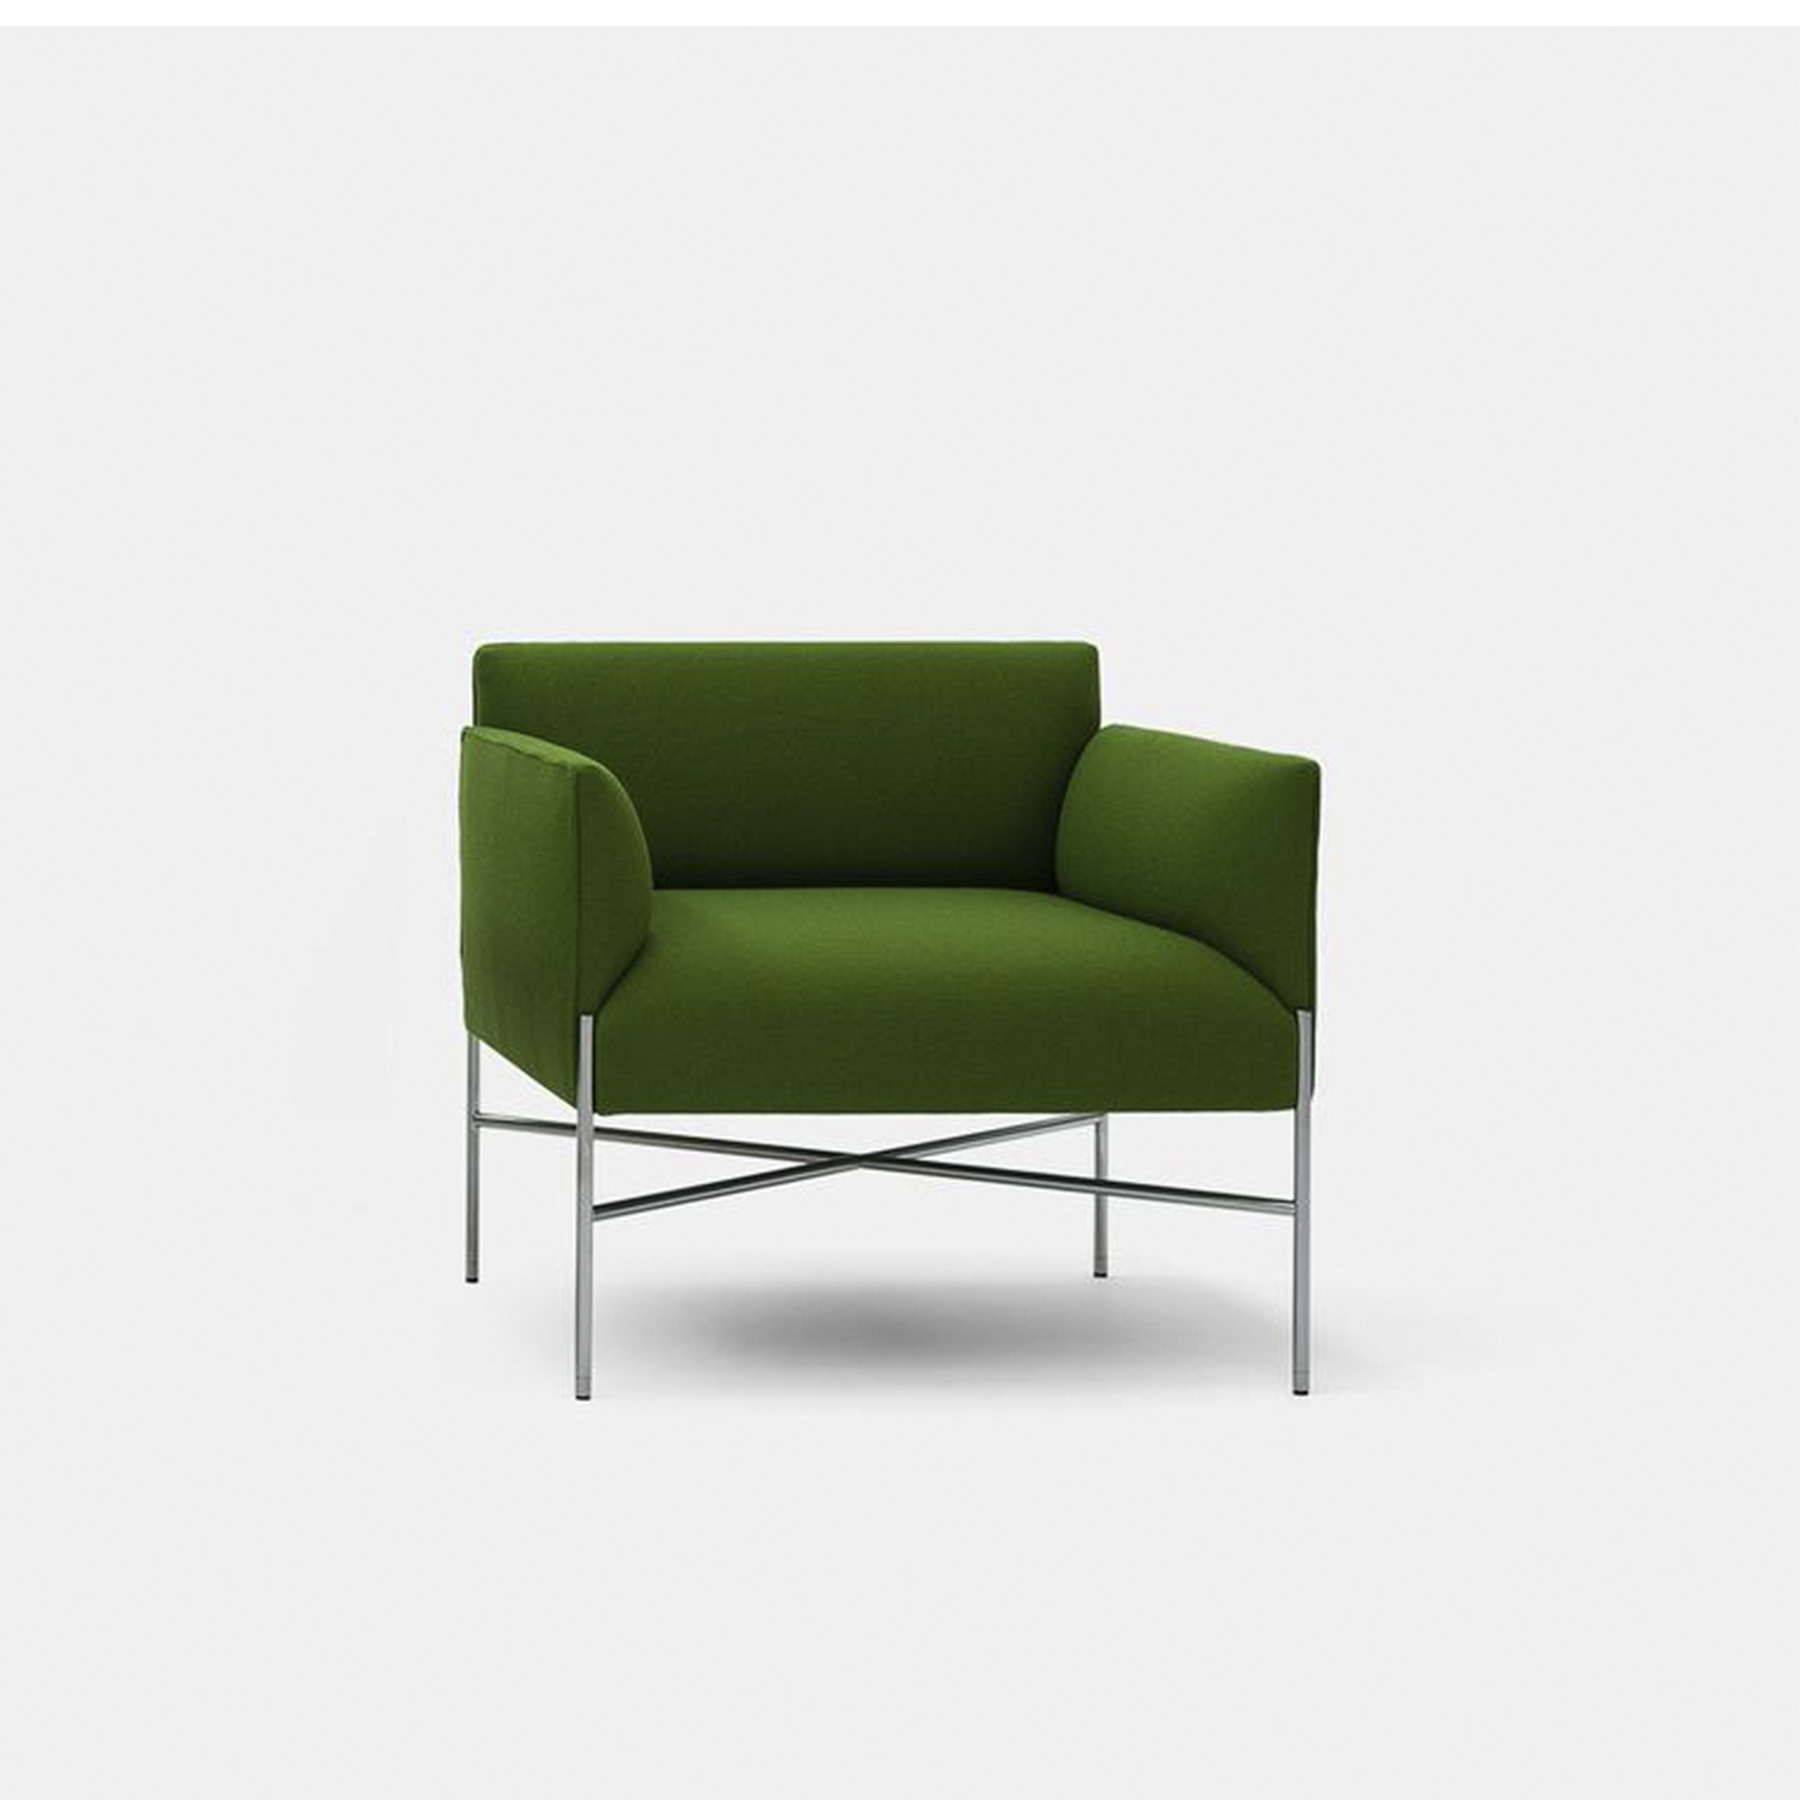 Chill-Out Lounge Armchair with Armrests - Chill-Out is a system of sofas and armchairs that can stand alone or create a vast range of different linear or corner compositions. It features a light, slim base and cosy, comfortable cushioning, to which back and armrests can be added. An ideal combination both for domestic and collective spaces, particularly in the version with a built-in coffee table. Chill-Out as all our models of our collection is obtained from the value of materials used, the high skills of our workmanship and the freshness of our realisation that cross the time.  | Matter of Stuff